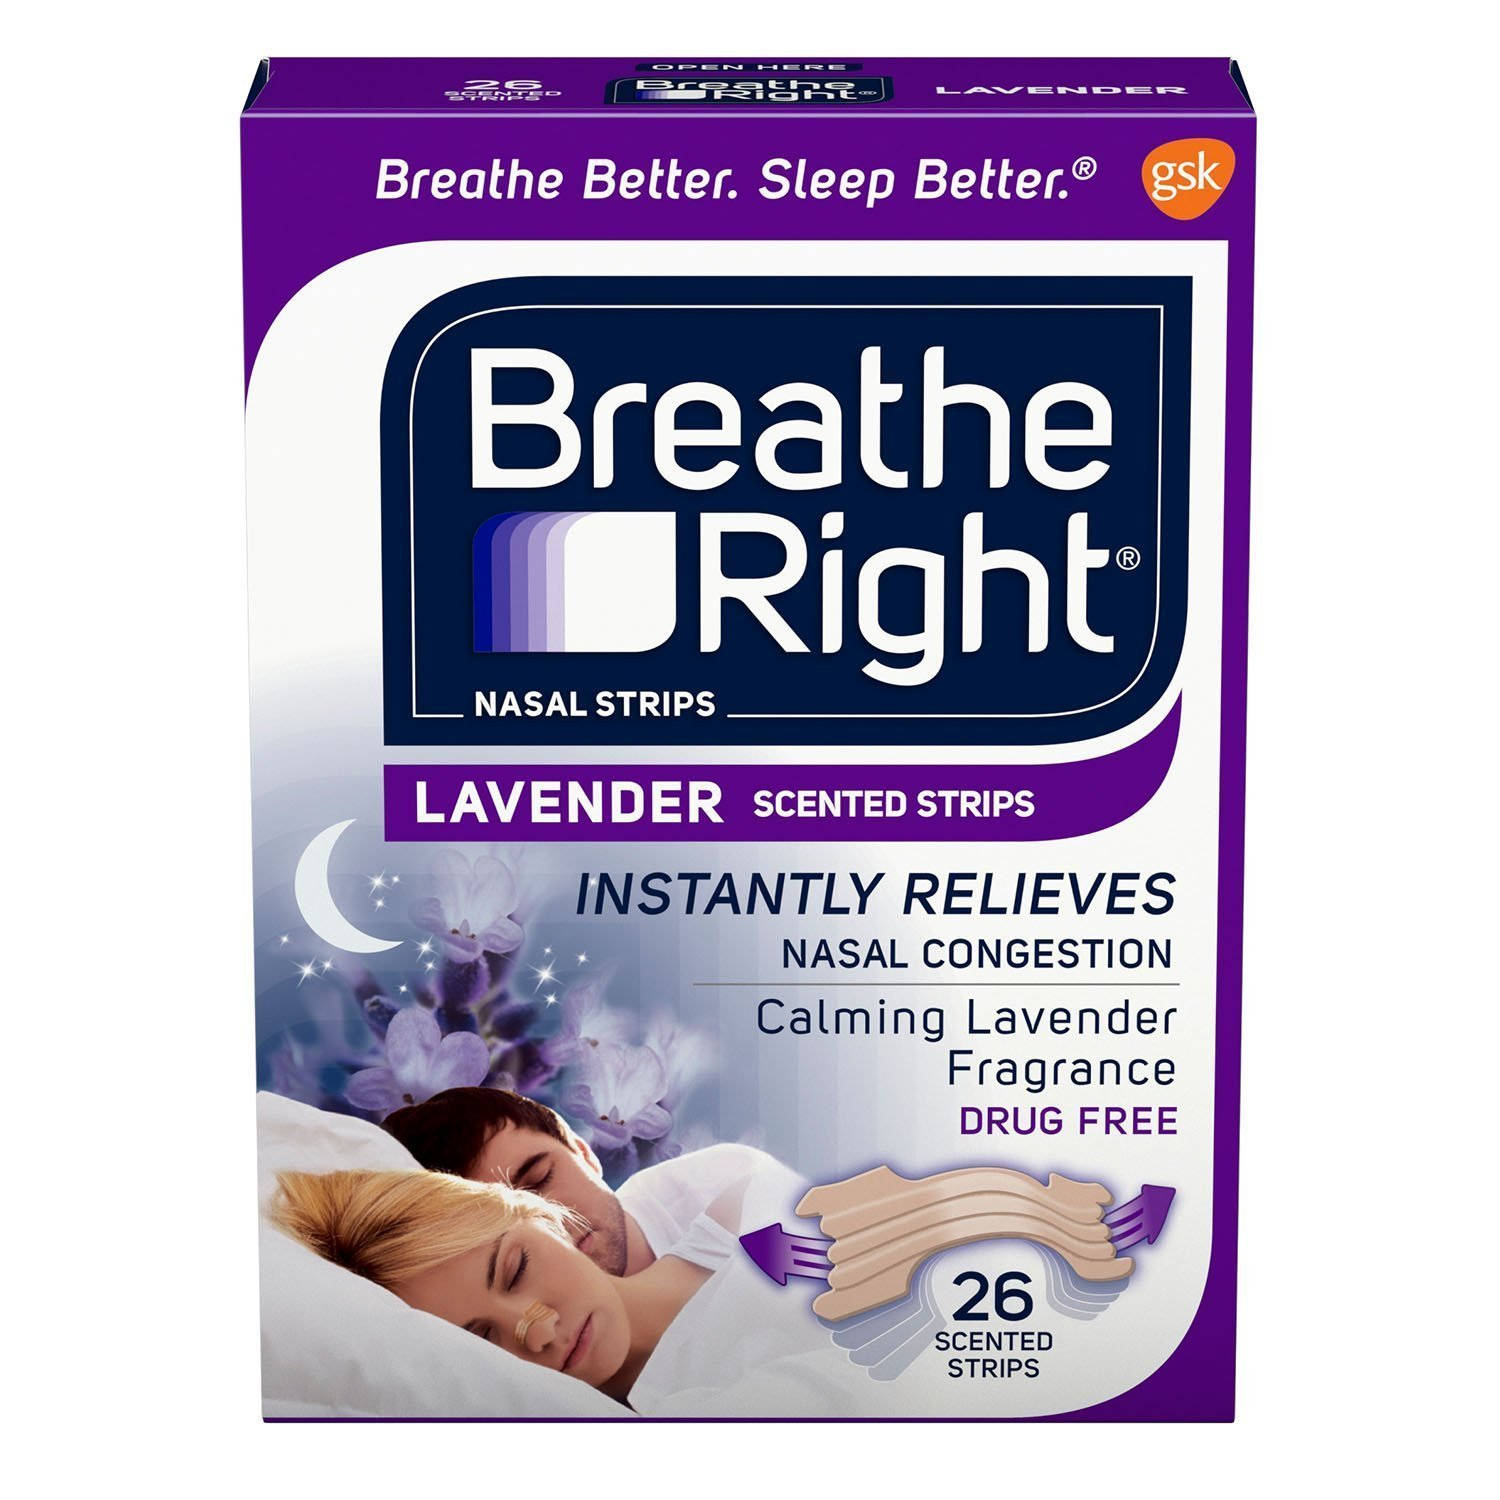 Breathe Right Calming Lavender Scented Drug-Free Nasal Strips for Nasal Congestion Relief 26 count, Pack of 3